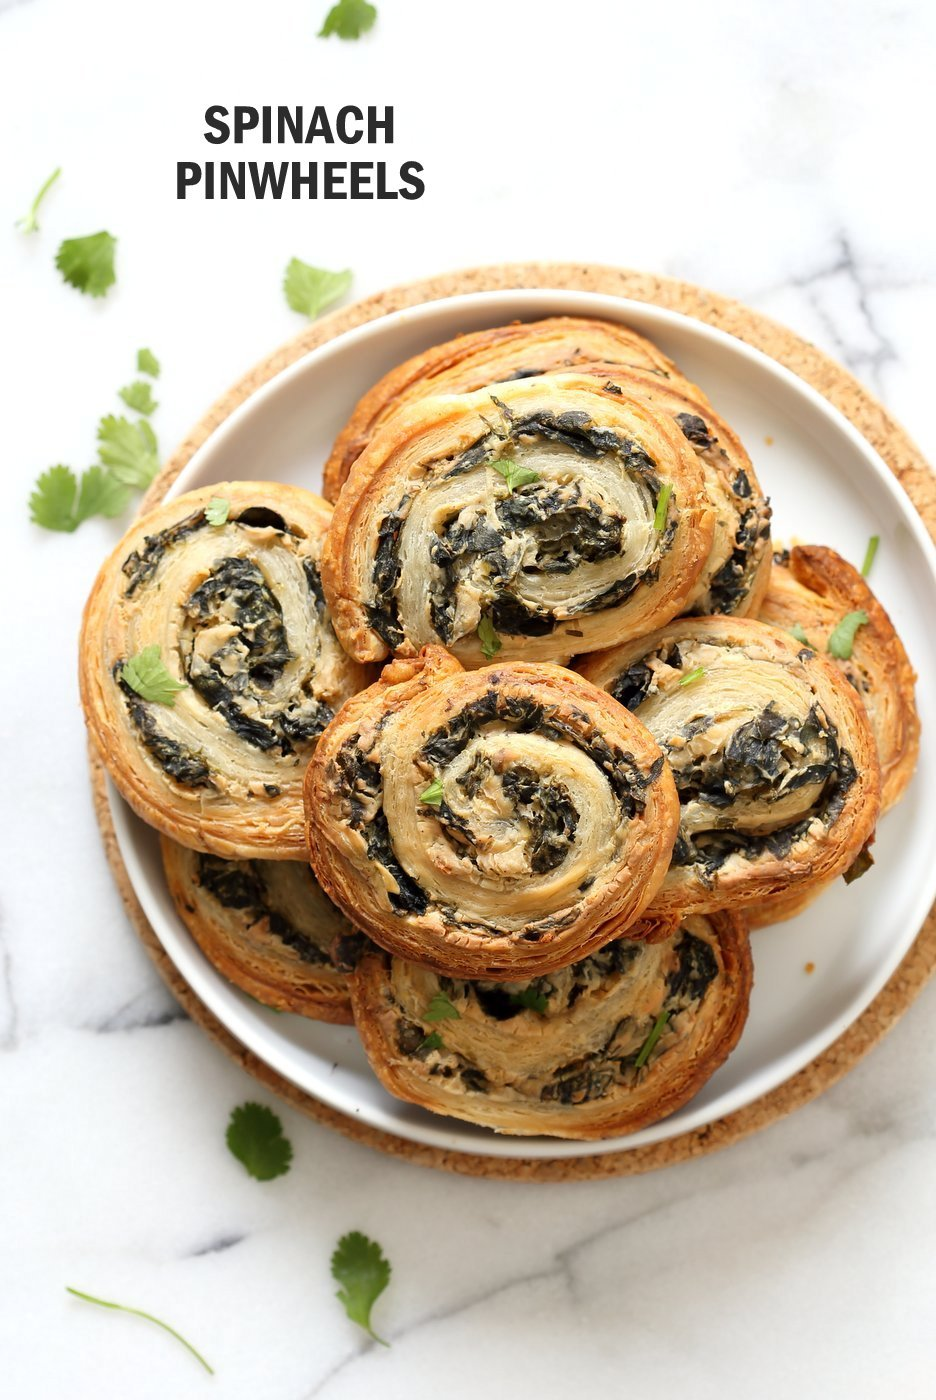 Vegan Spinach Pinwheels with Cream Cheese